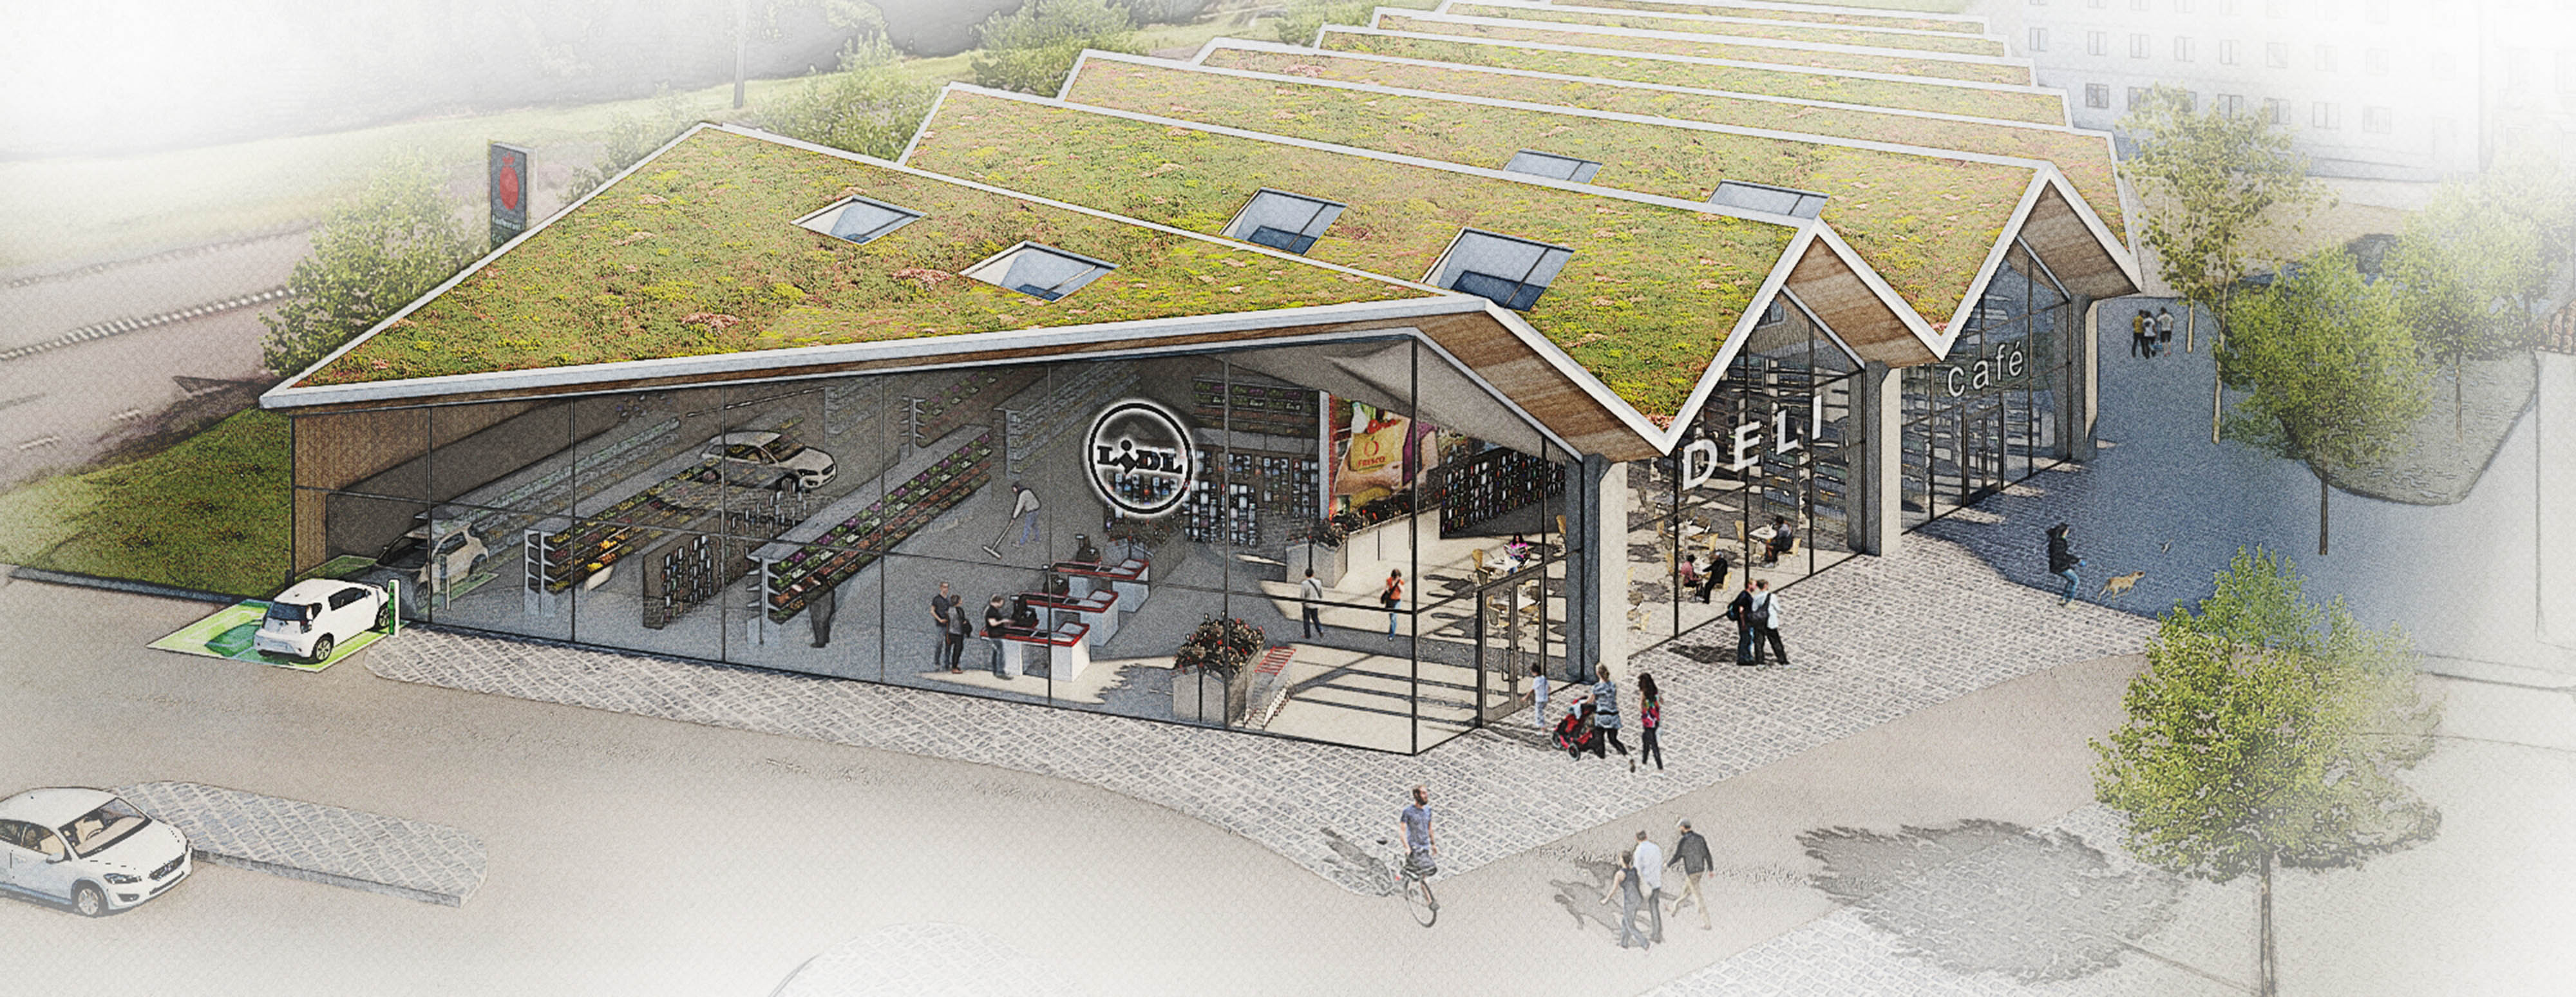 Planned Lidl store in Sigtuna, Sweden. Illustration: Link Arkitektur